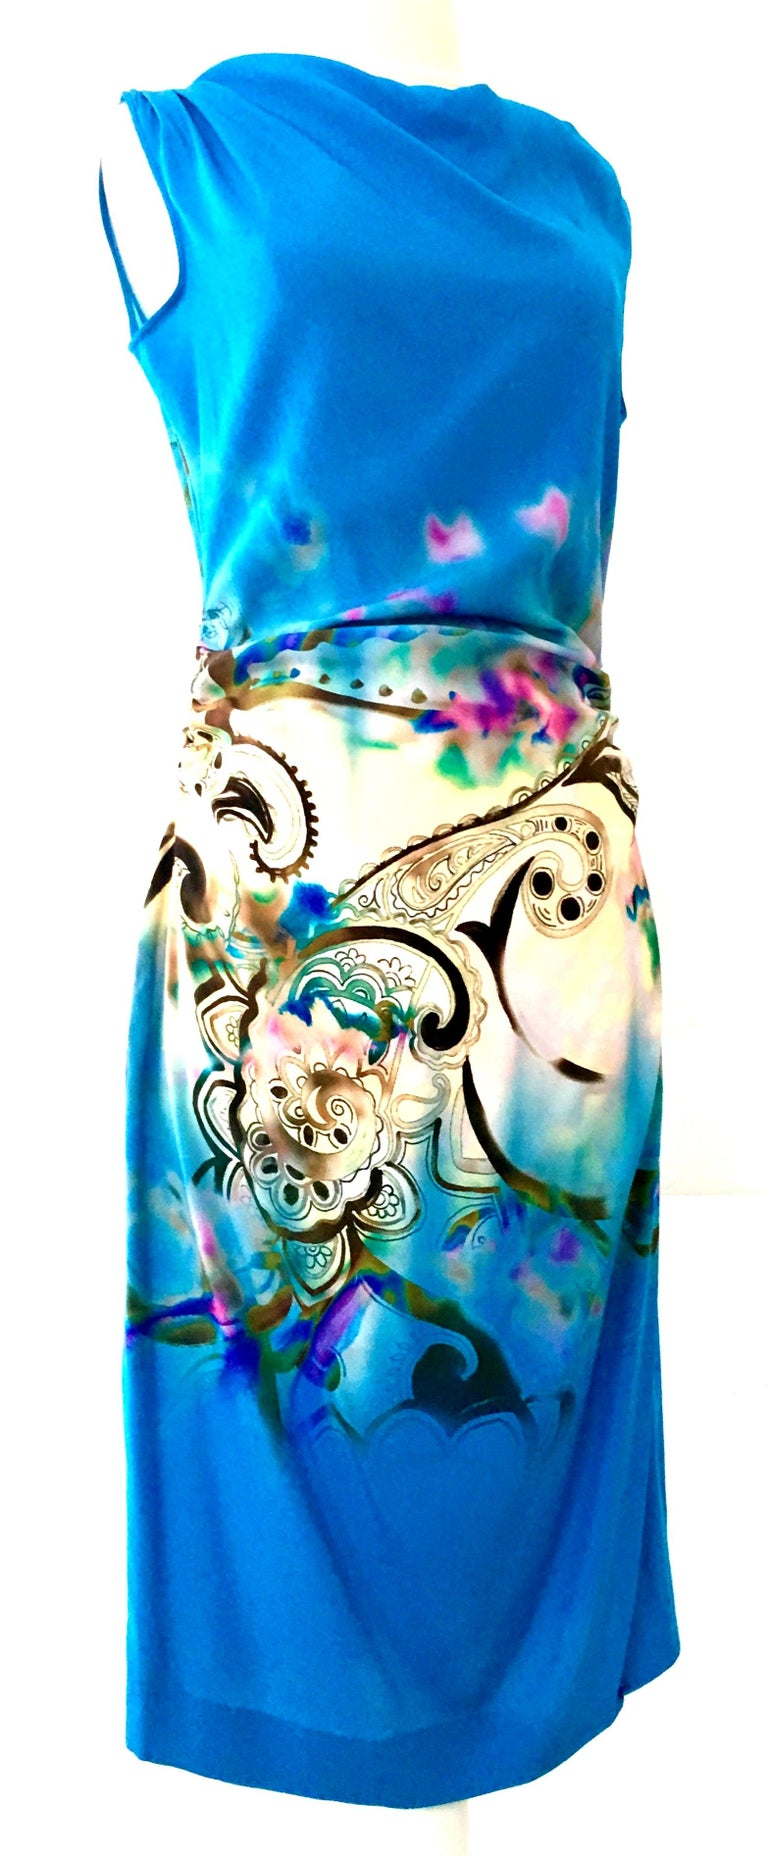 21st Century Modern & New Italian 100% Silk Print Shift Dress By, Etro. This silk turquoise with paisley and abstract print dress is new with original manufacturer and retail tags present. It features a vivid turquoise ground with a paisley and